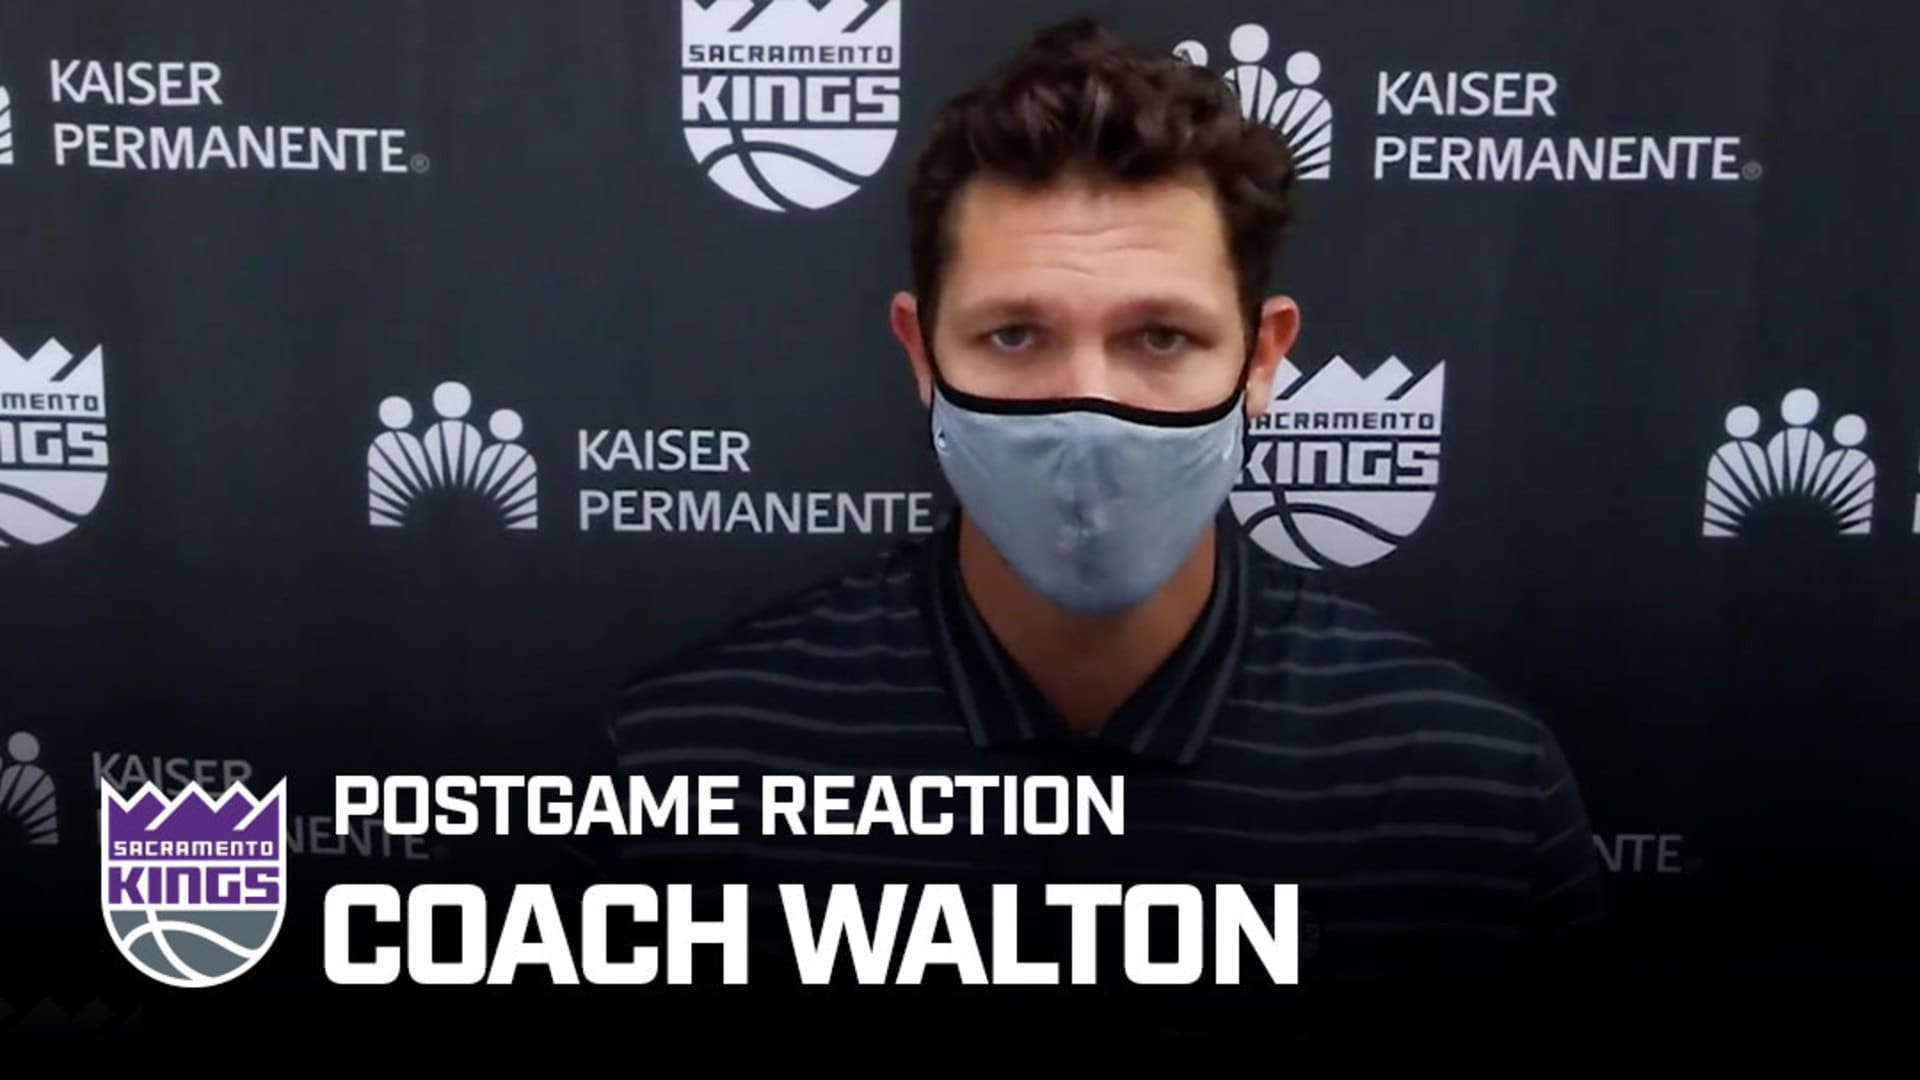 'Every Night's Going to Be It's Own Unique Challenge' | Coach Walton Postgame Reaction 7.31.20